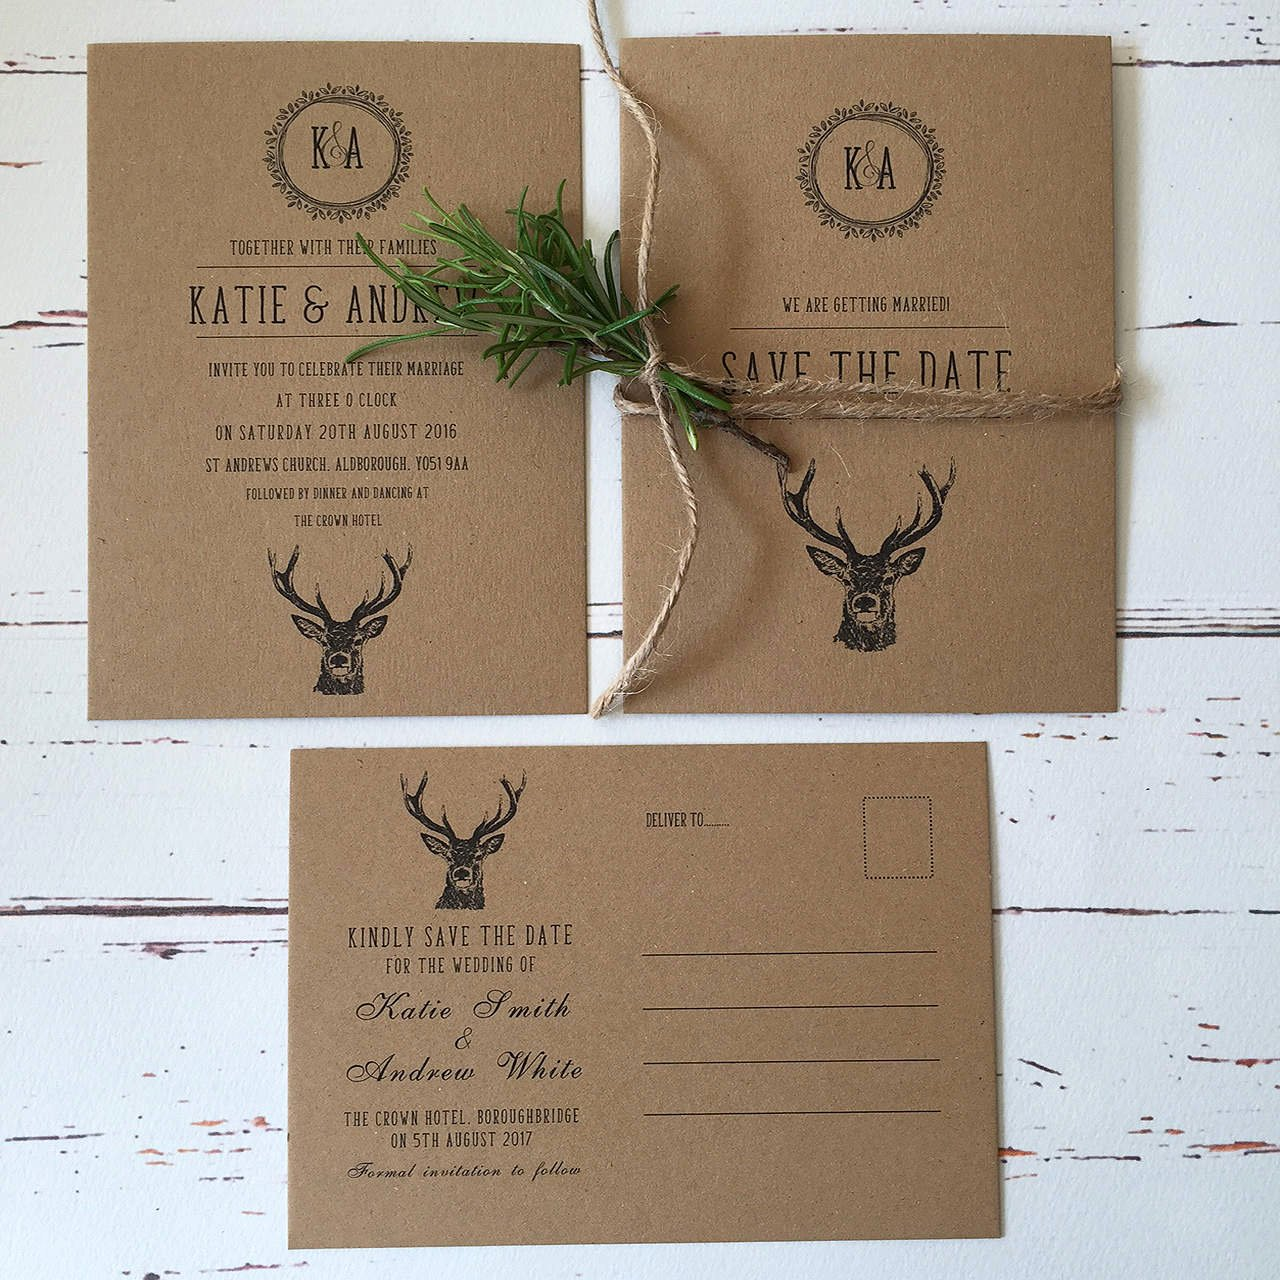 Rustic Wedding Invitations Template Unique Rustic Wedding Invitations and Stationery Wagtail Designs